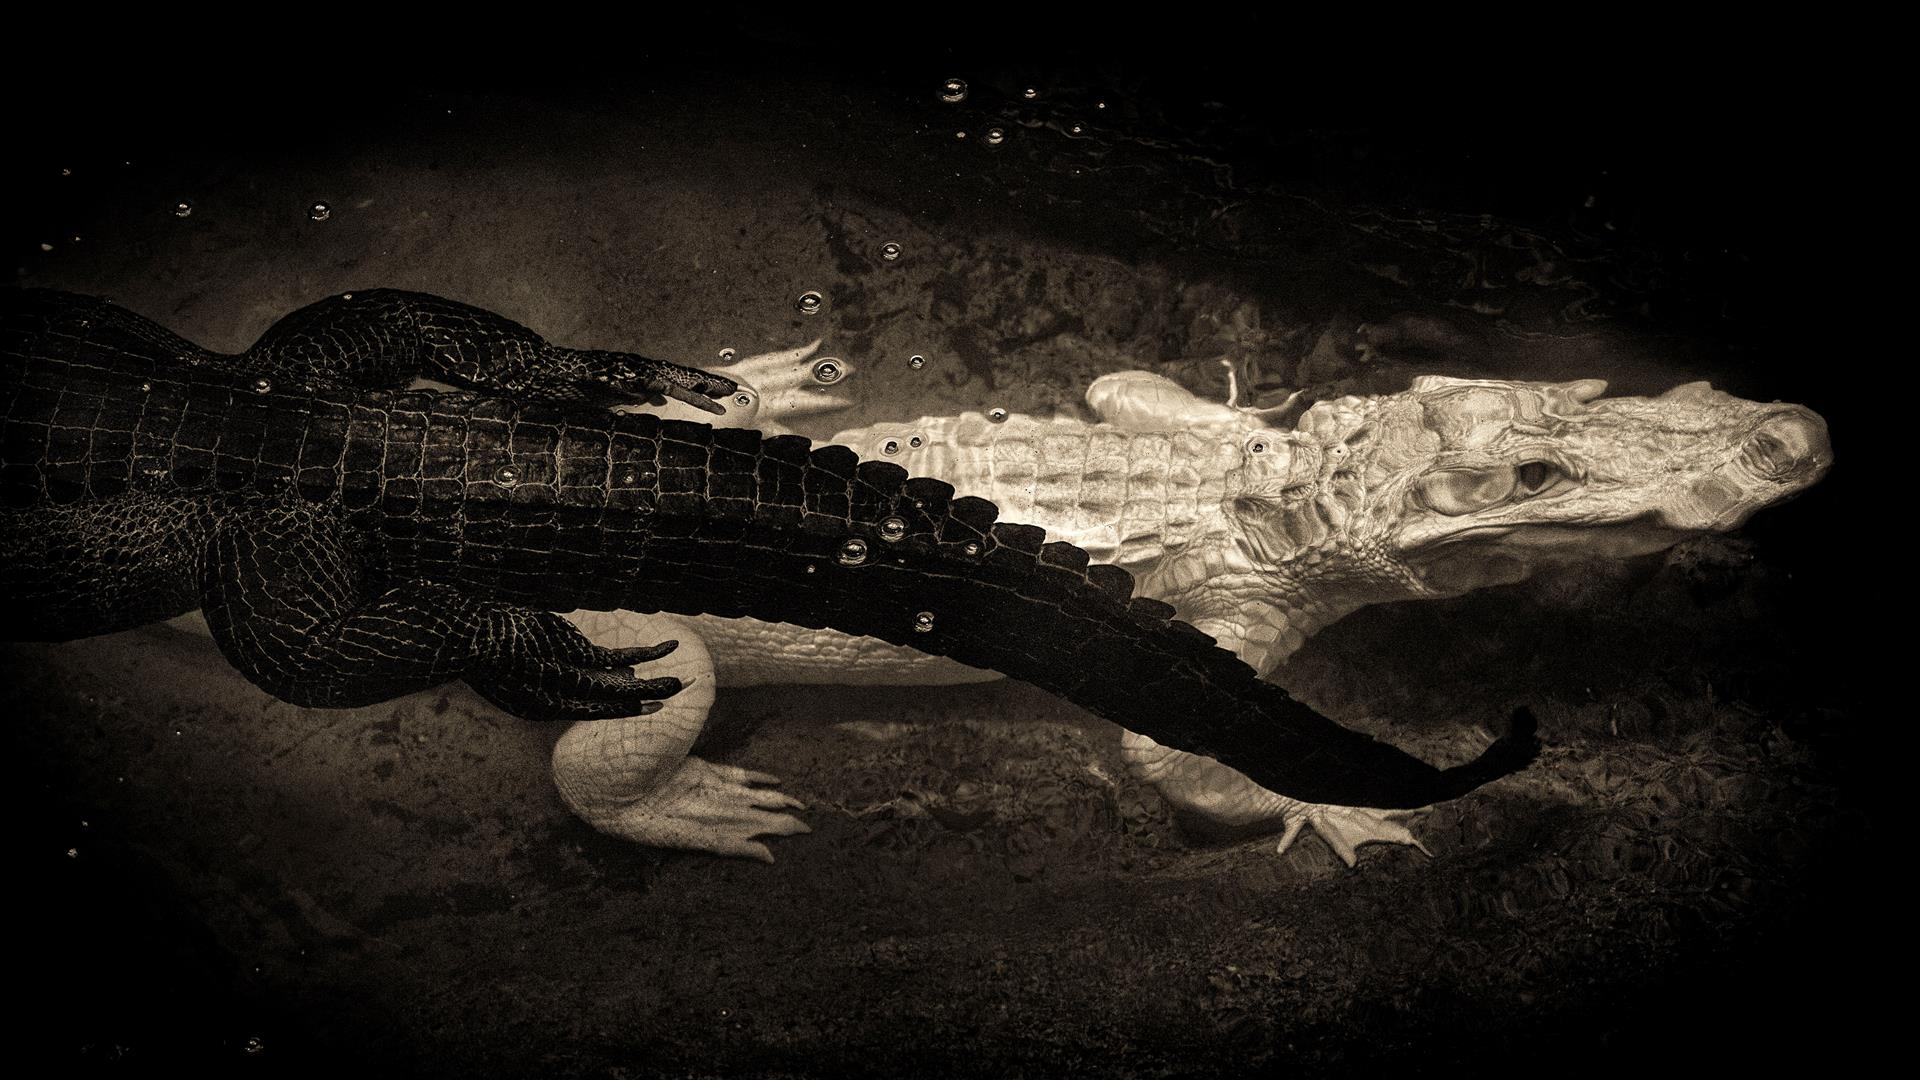 Black & White Alligators, © Ron Henderson, Dallas, Texas, Santa Fe Photographic